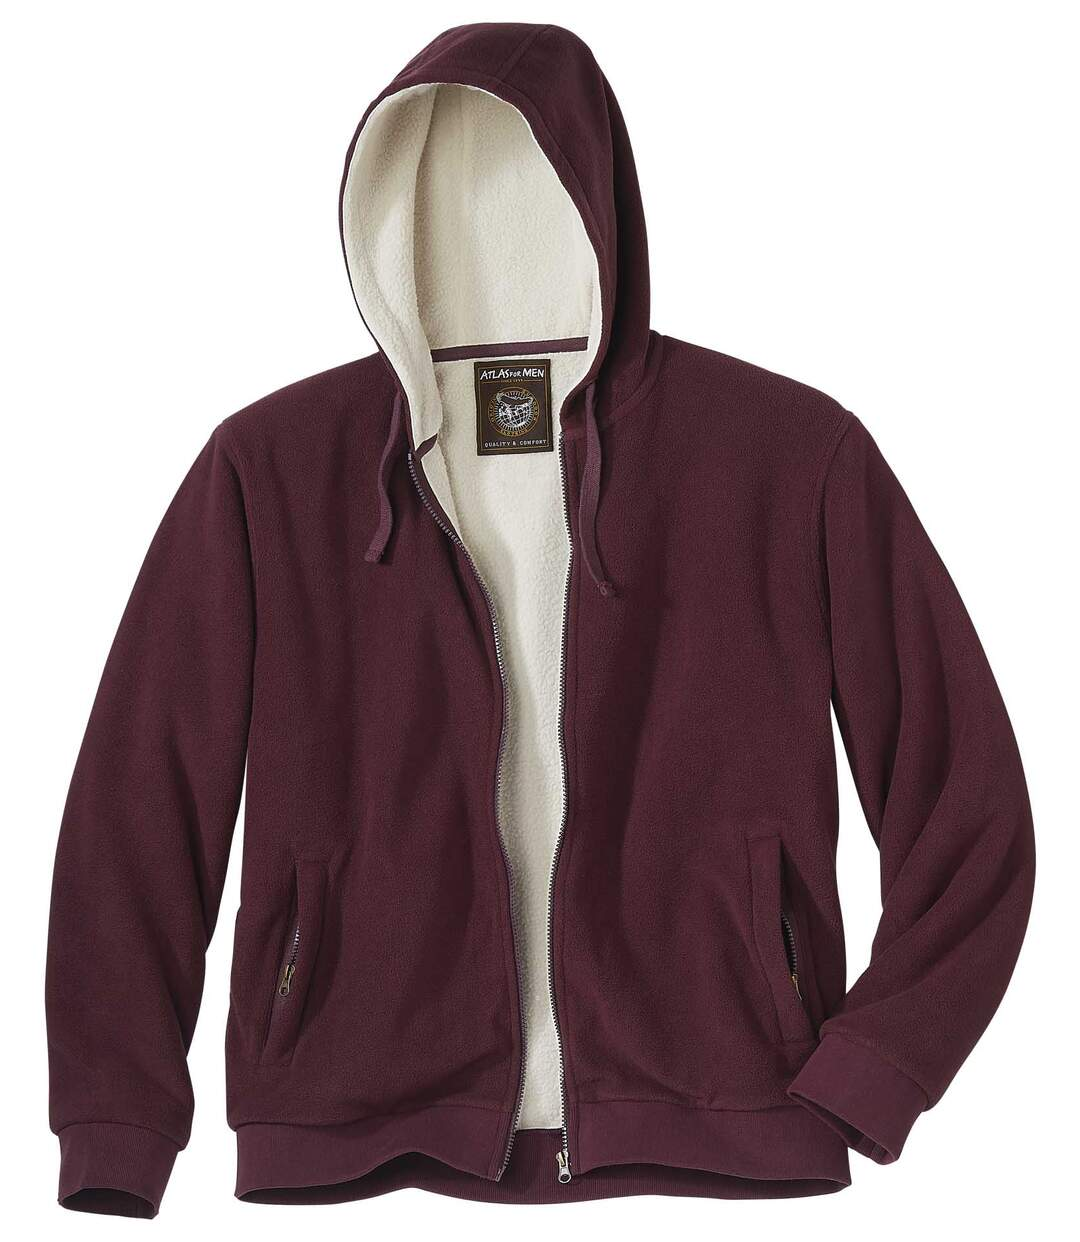 Men's Fleece Hoodie with Sherpa Lining and Full Zip – Burgundy Beige